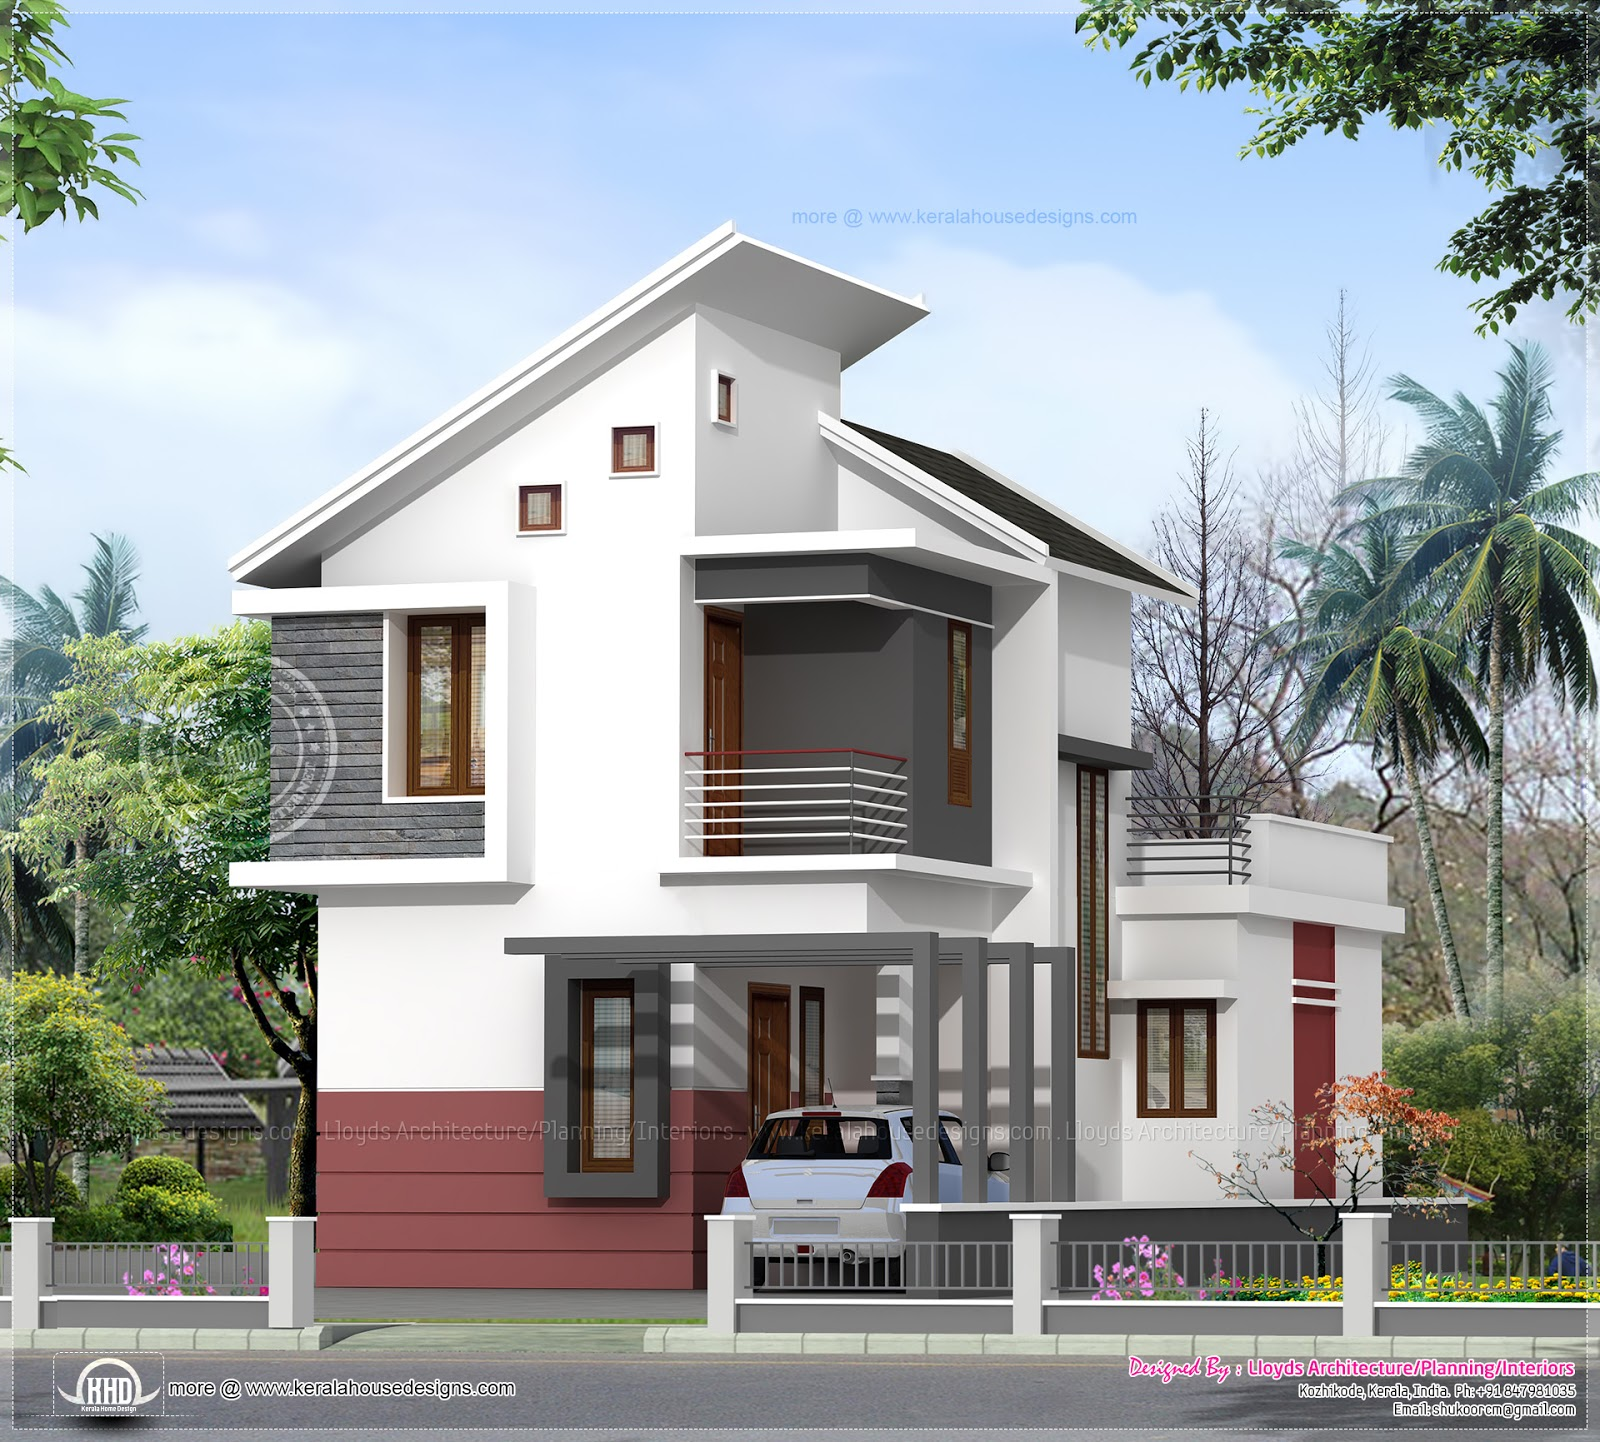 Modern Kerala Home Design: Small Home Kerala House Design Architectural House Plans